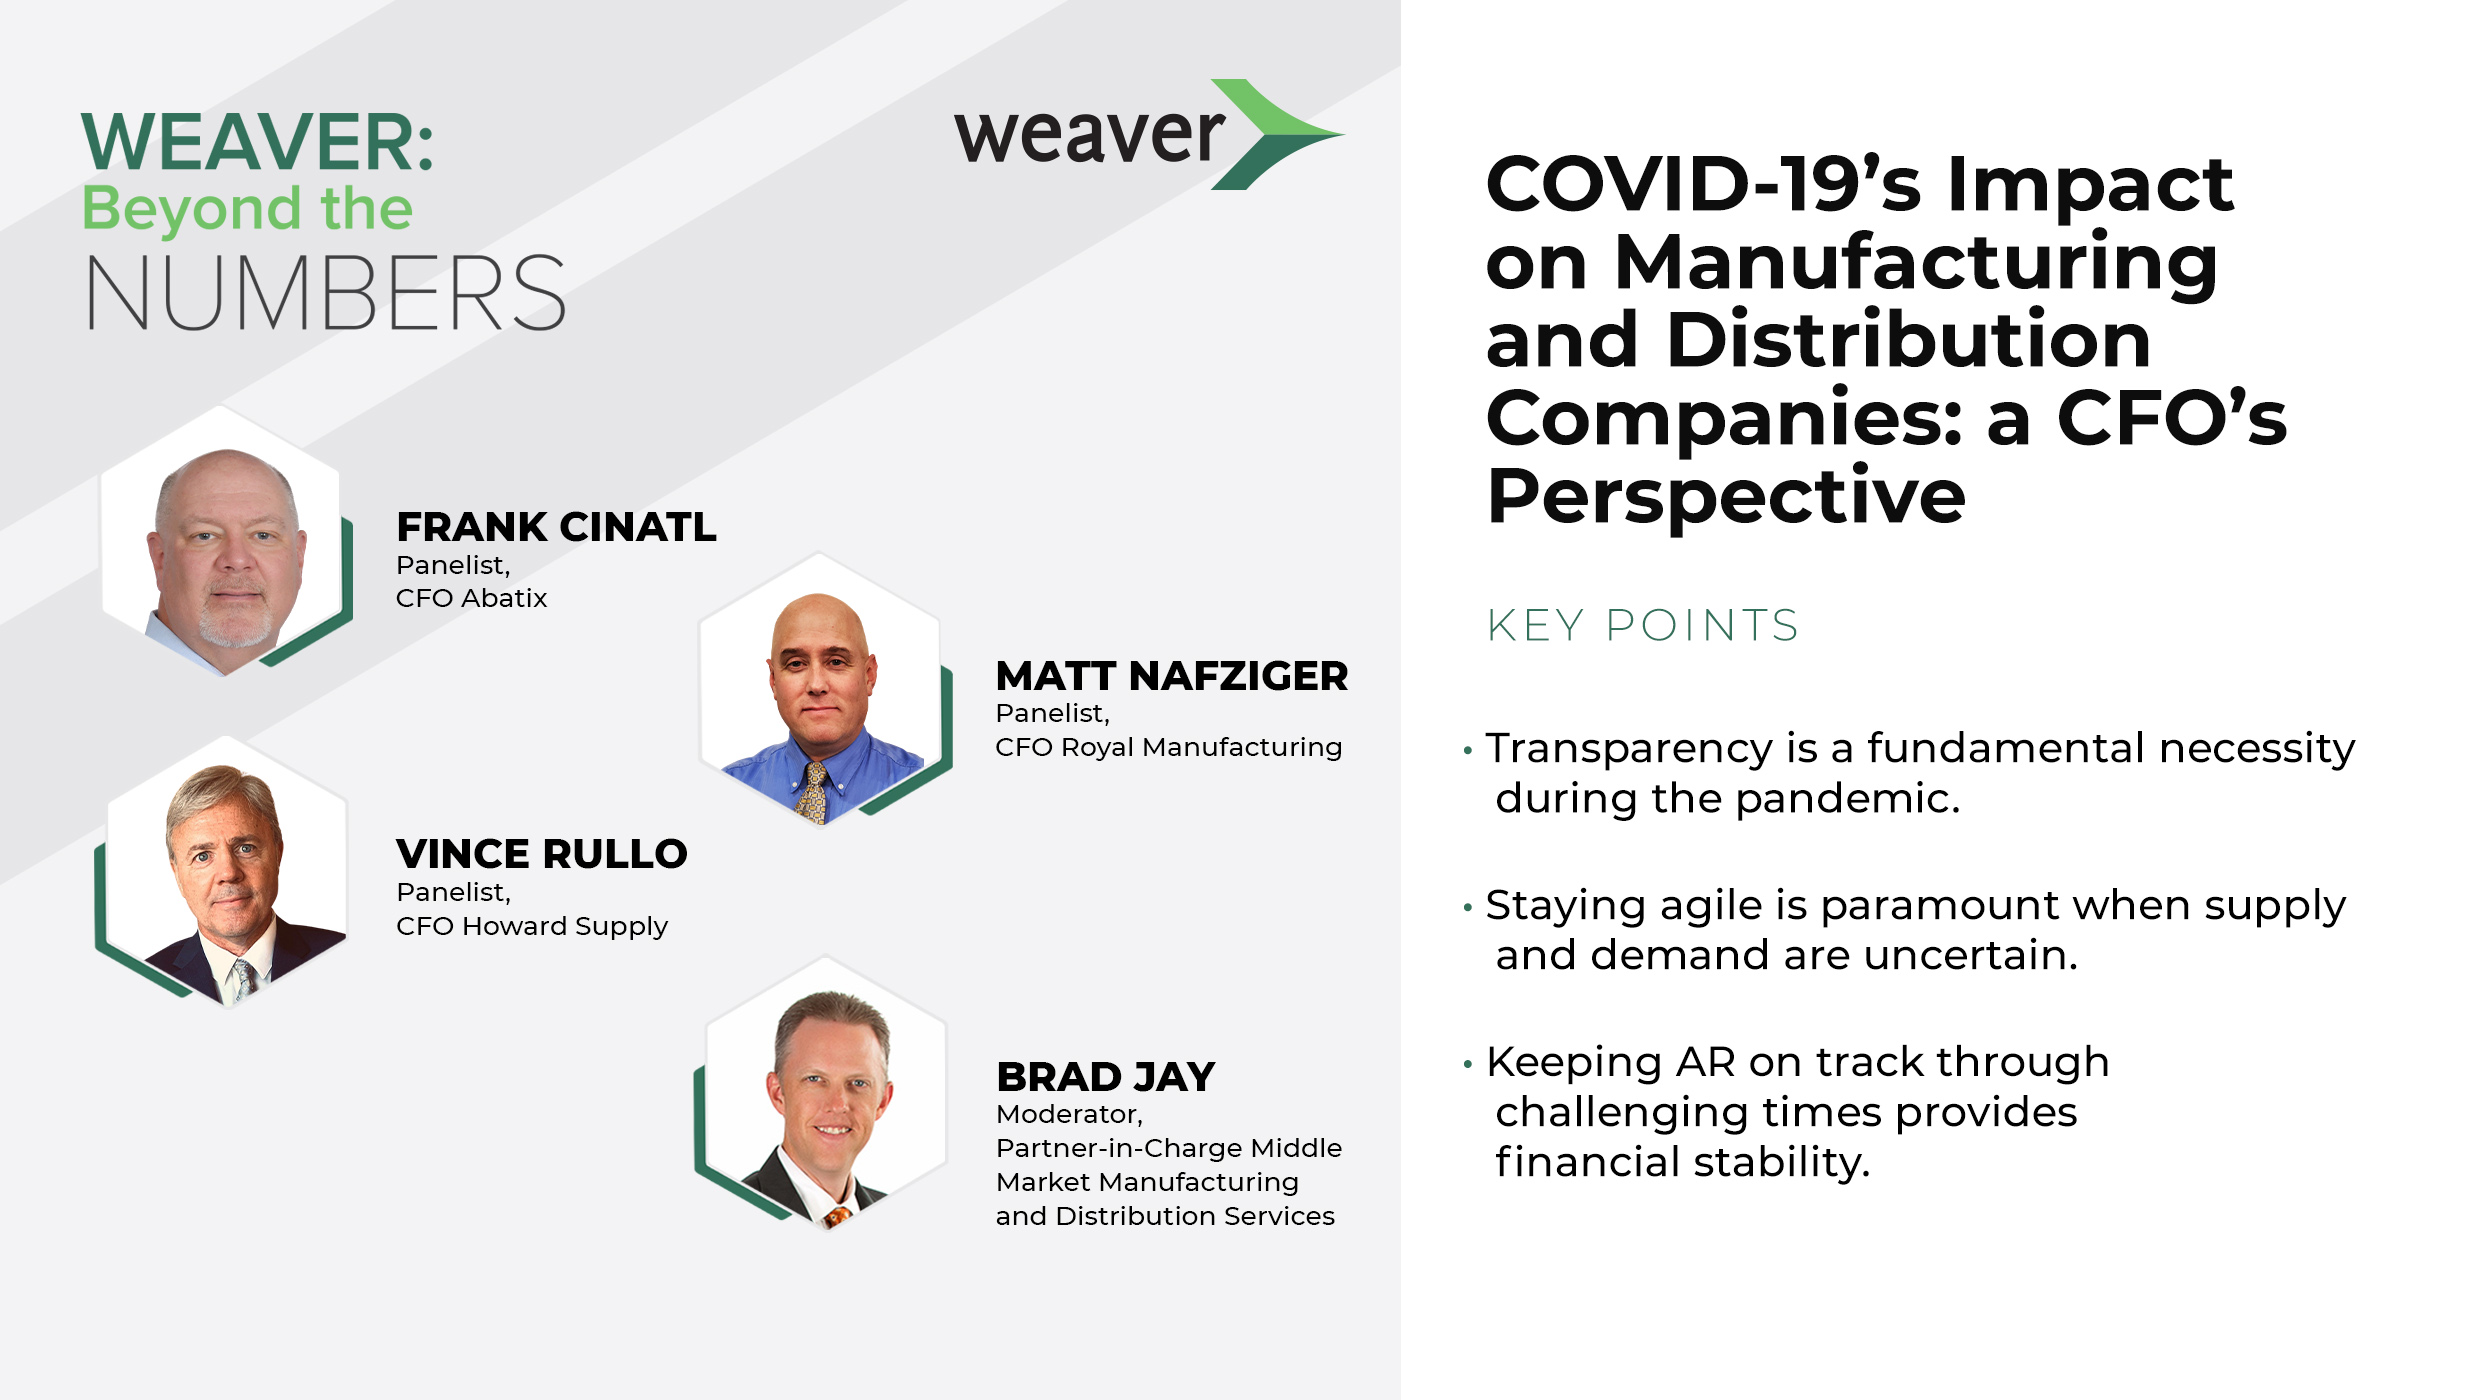 Weaver Beyond the Numbers: COVID-19's Impact on Manufacturing and Distribution Companies: a CFO's Perspective